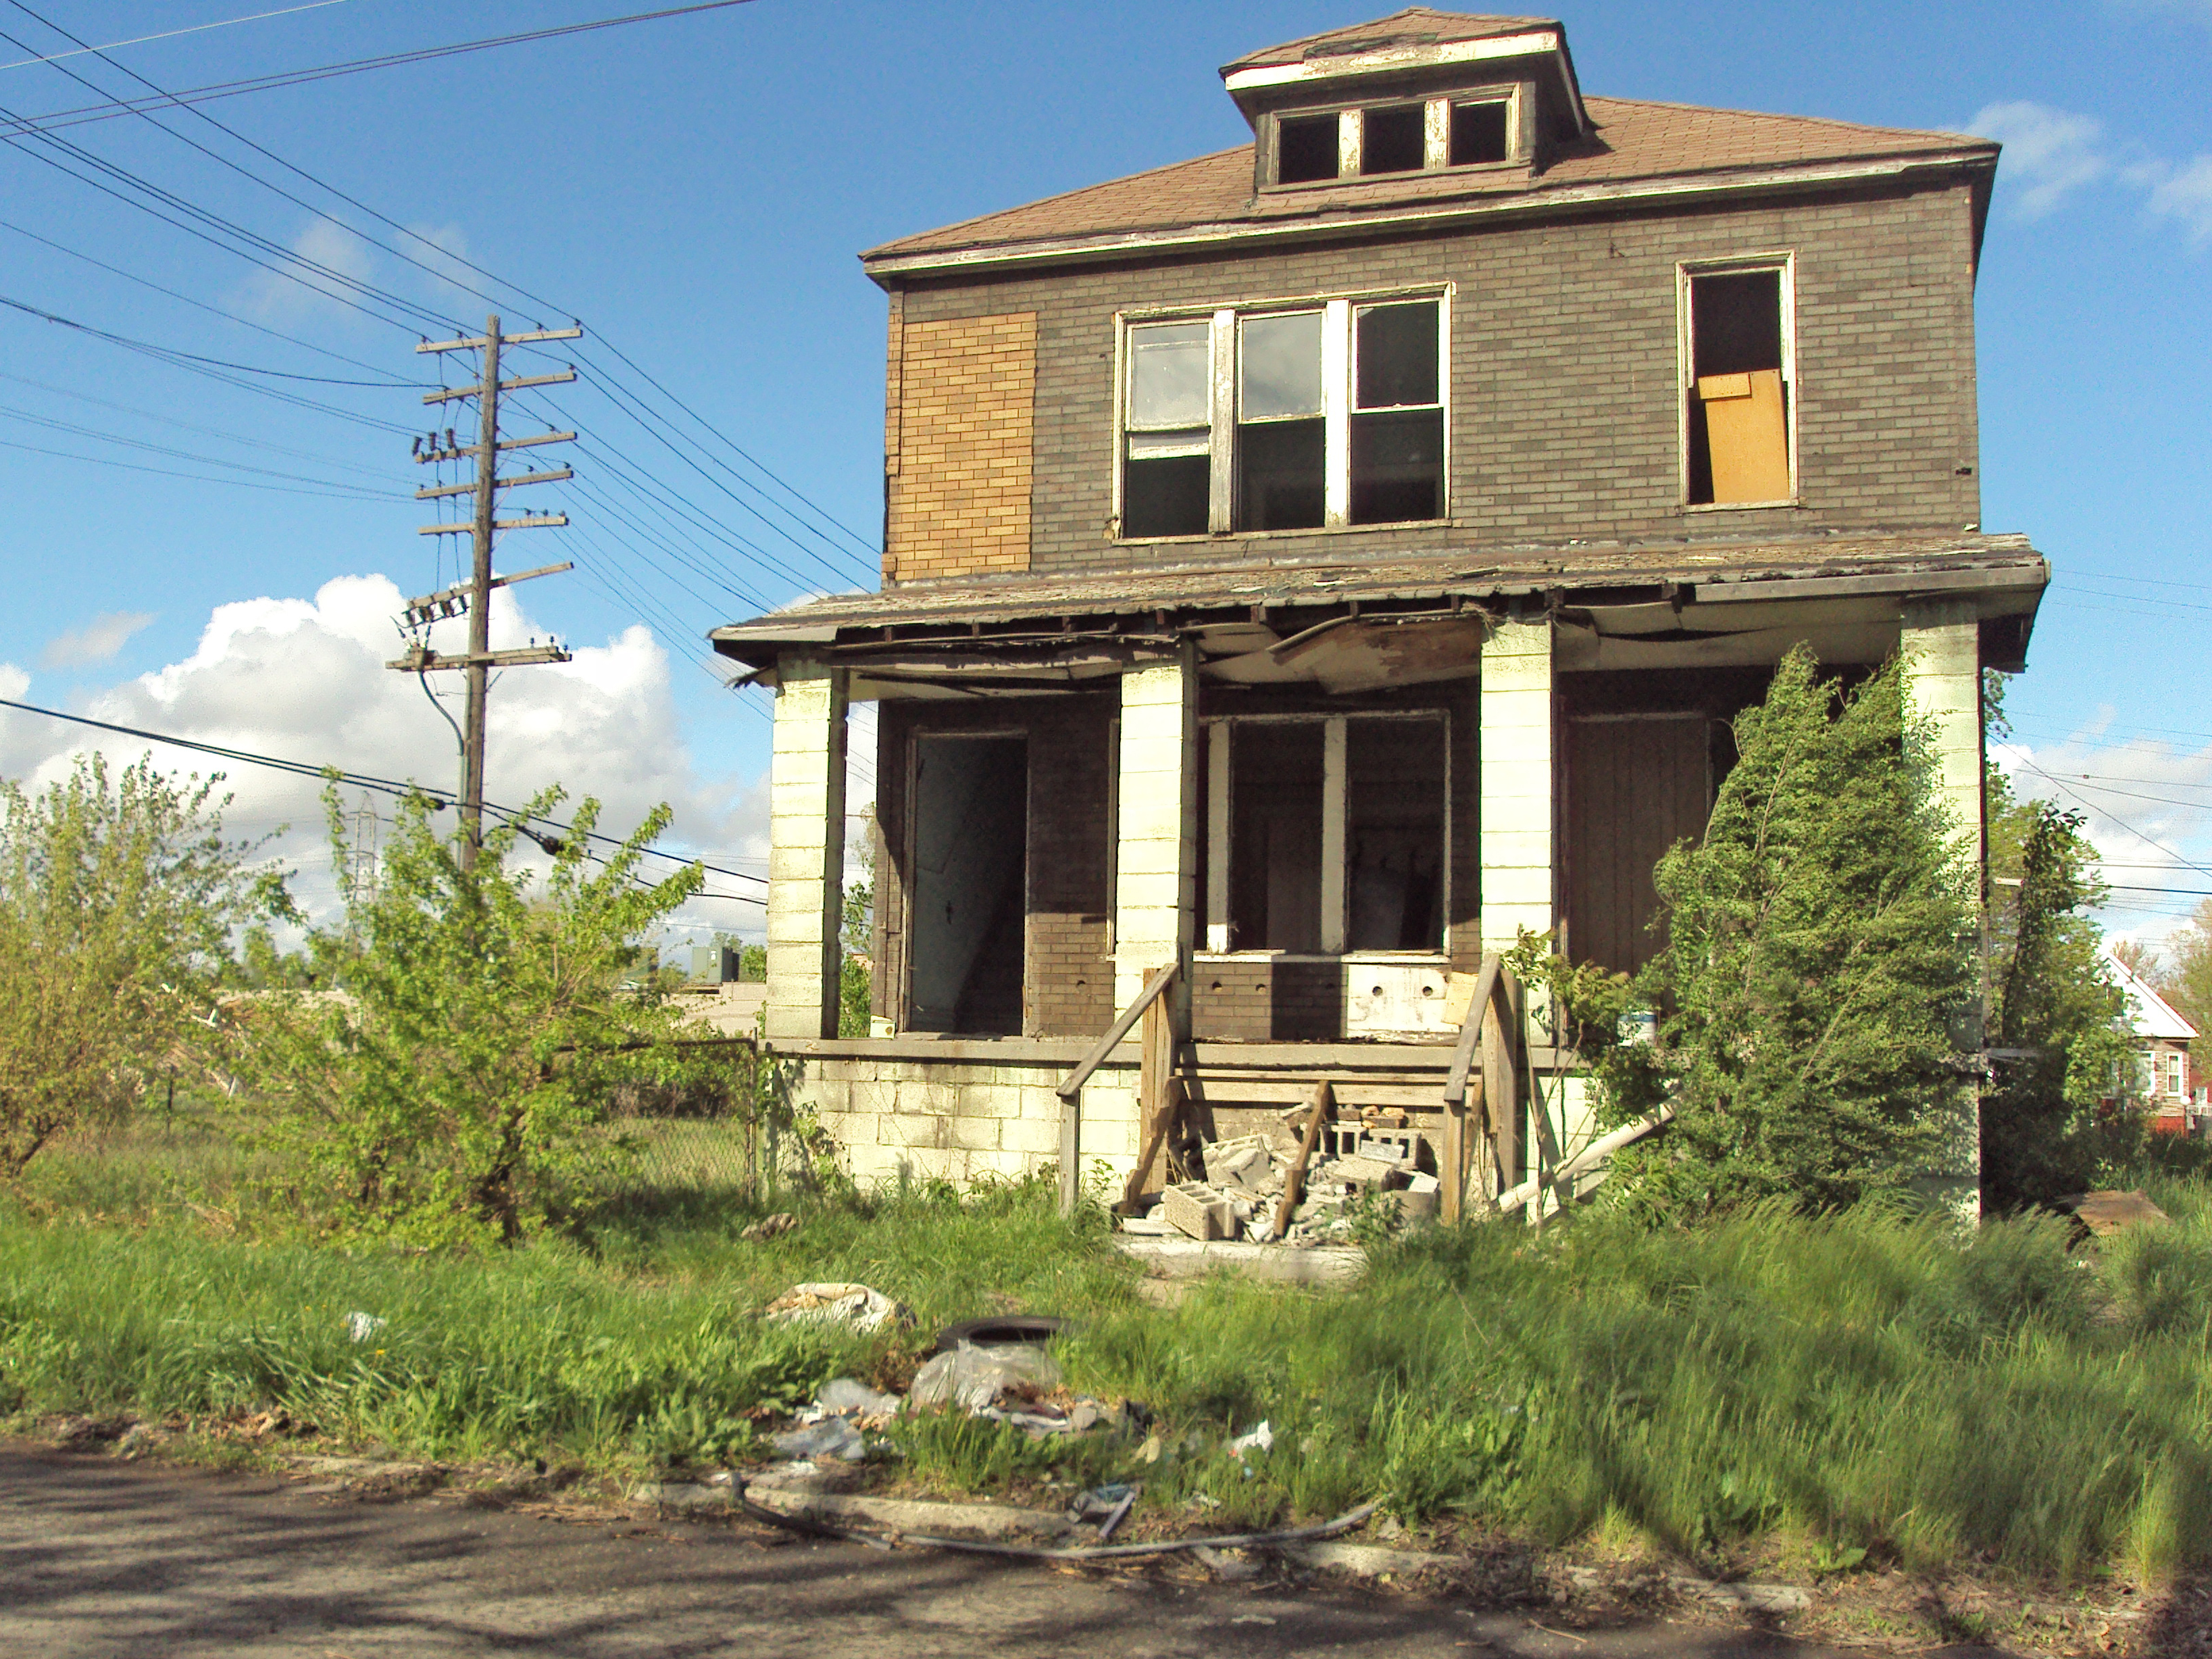 Decline of Detroit - Wikipedia